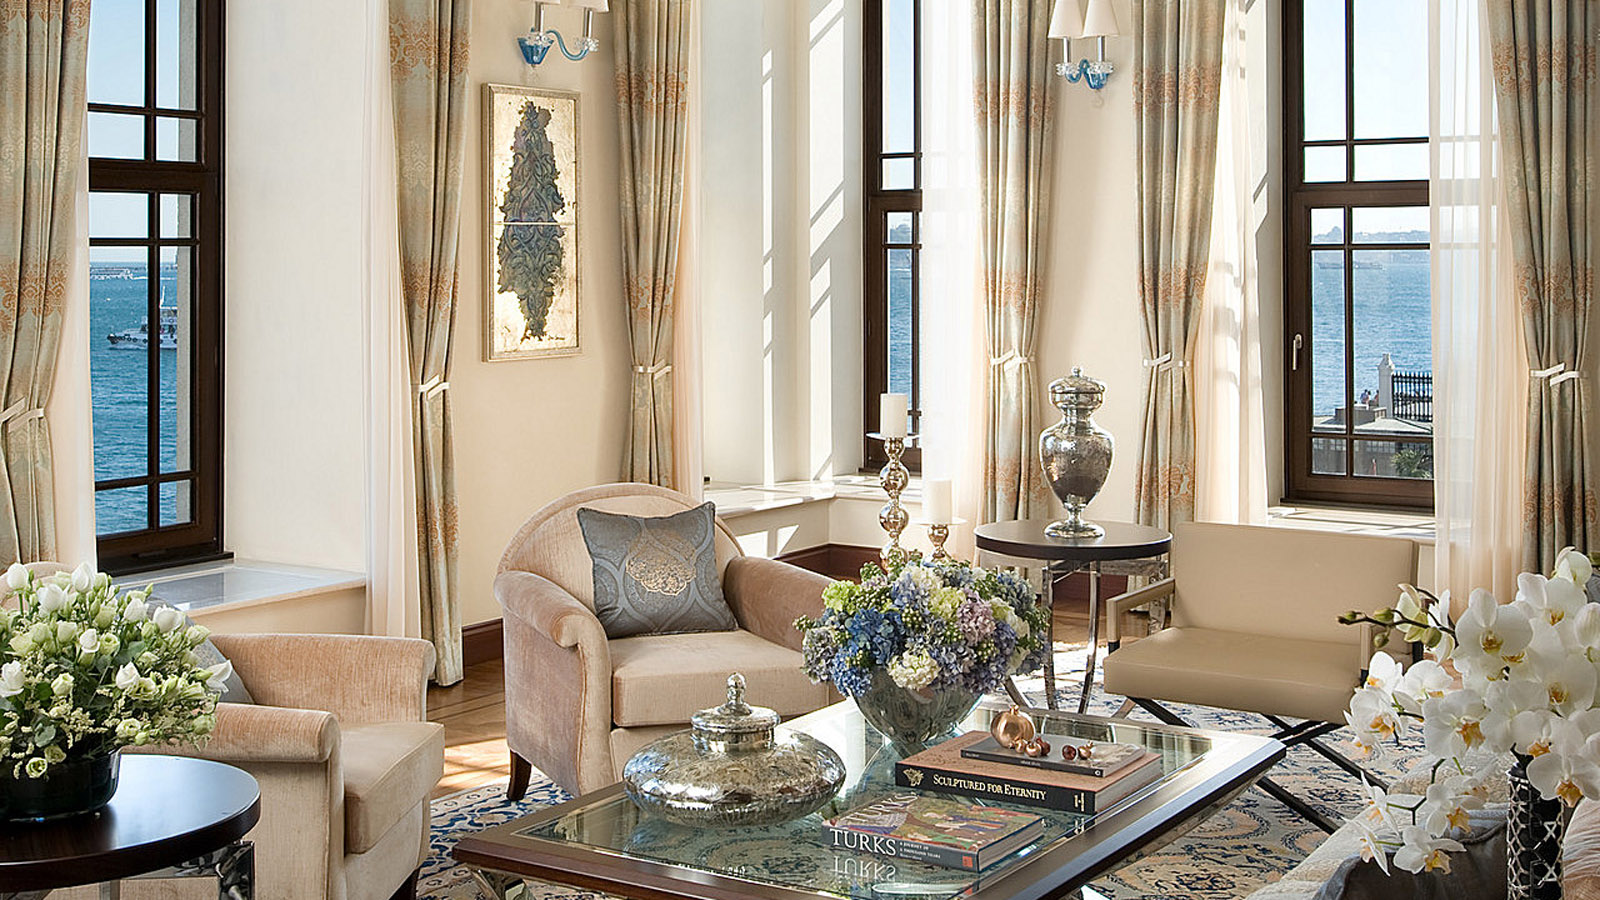 Istanbul Suite at Four Seasons Hotel at the Bosphorus